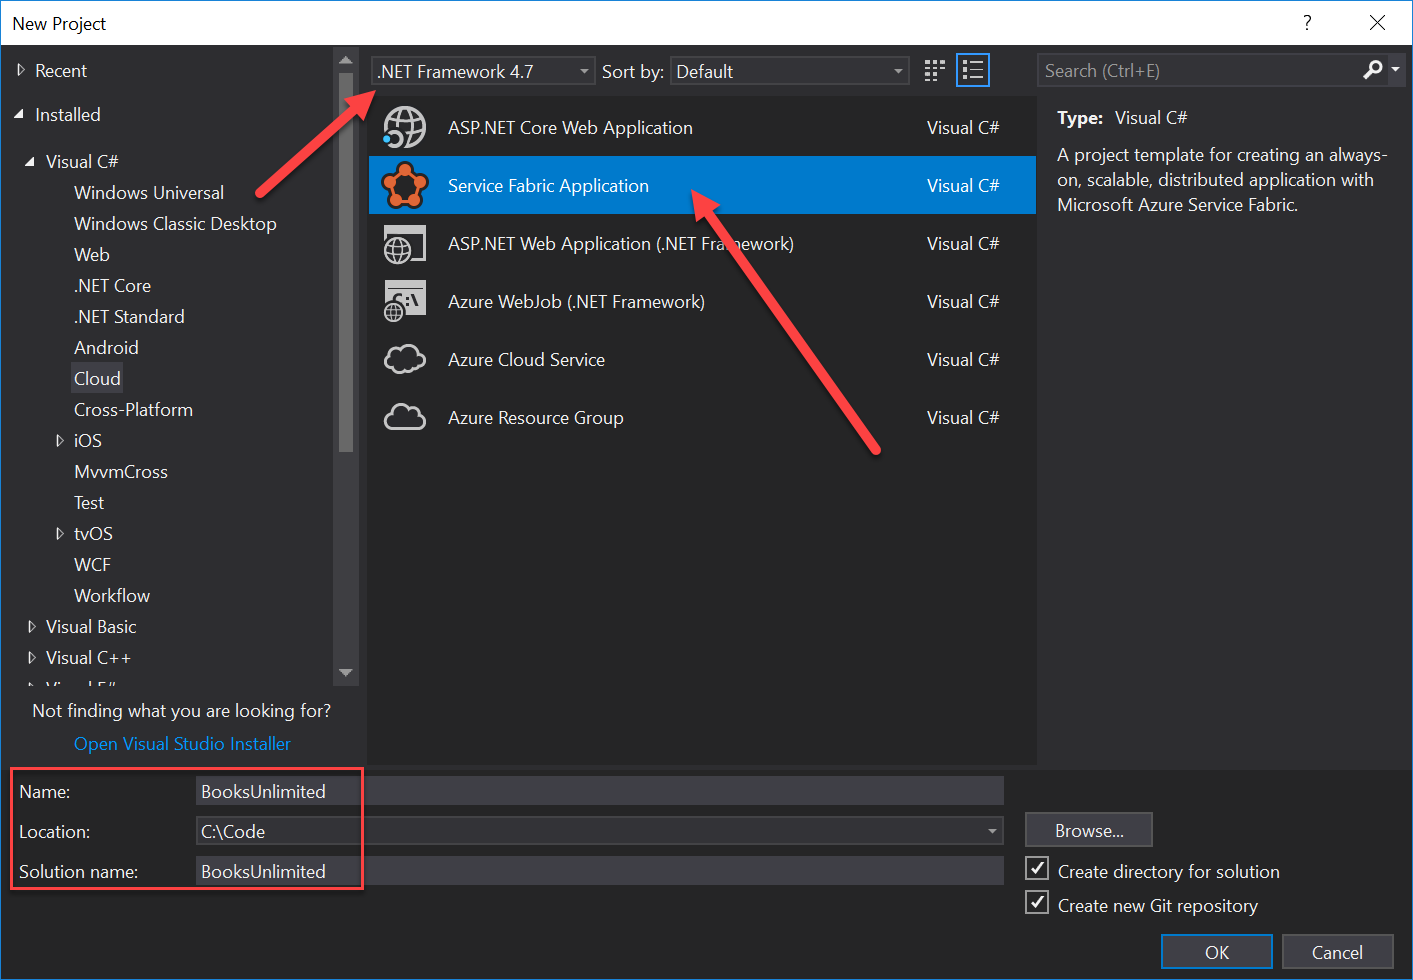 Creating a new Service Fabric Application using Visual Studio 2017